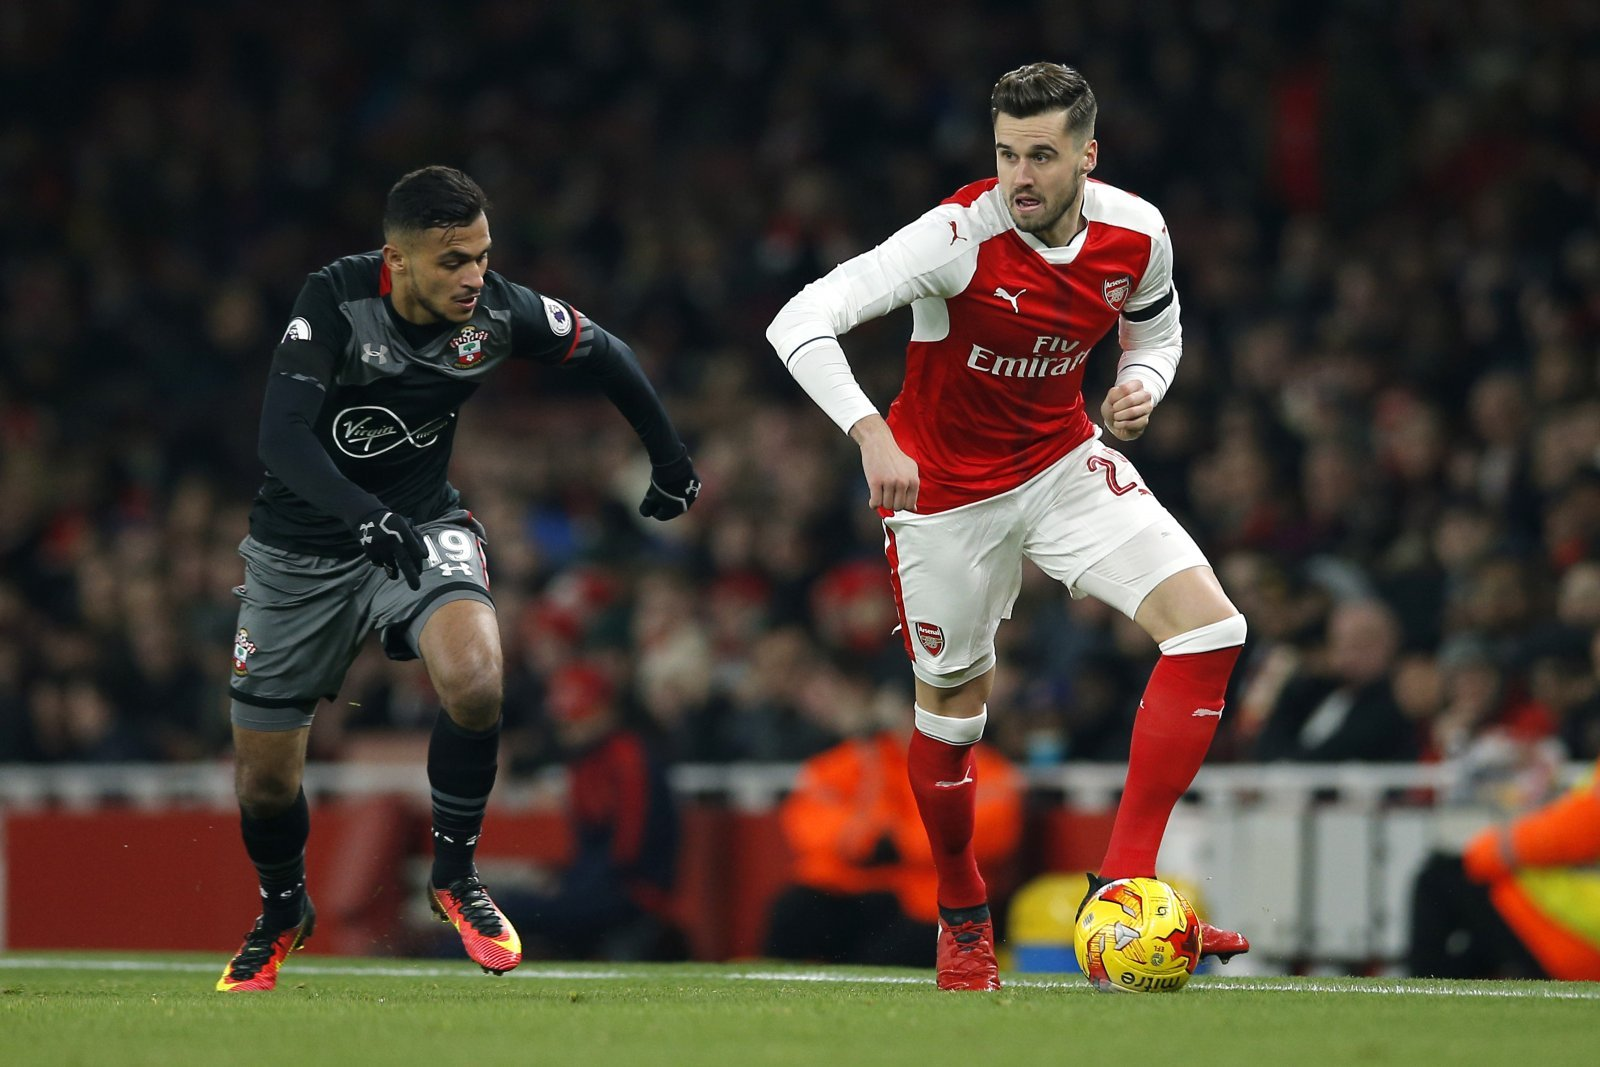 Carl Jenkinson would be the ideal signing for Celtic